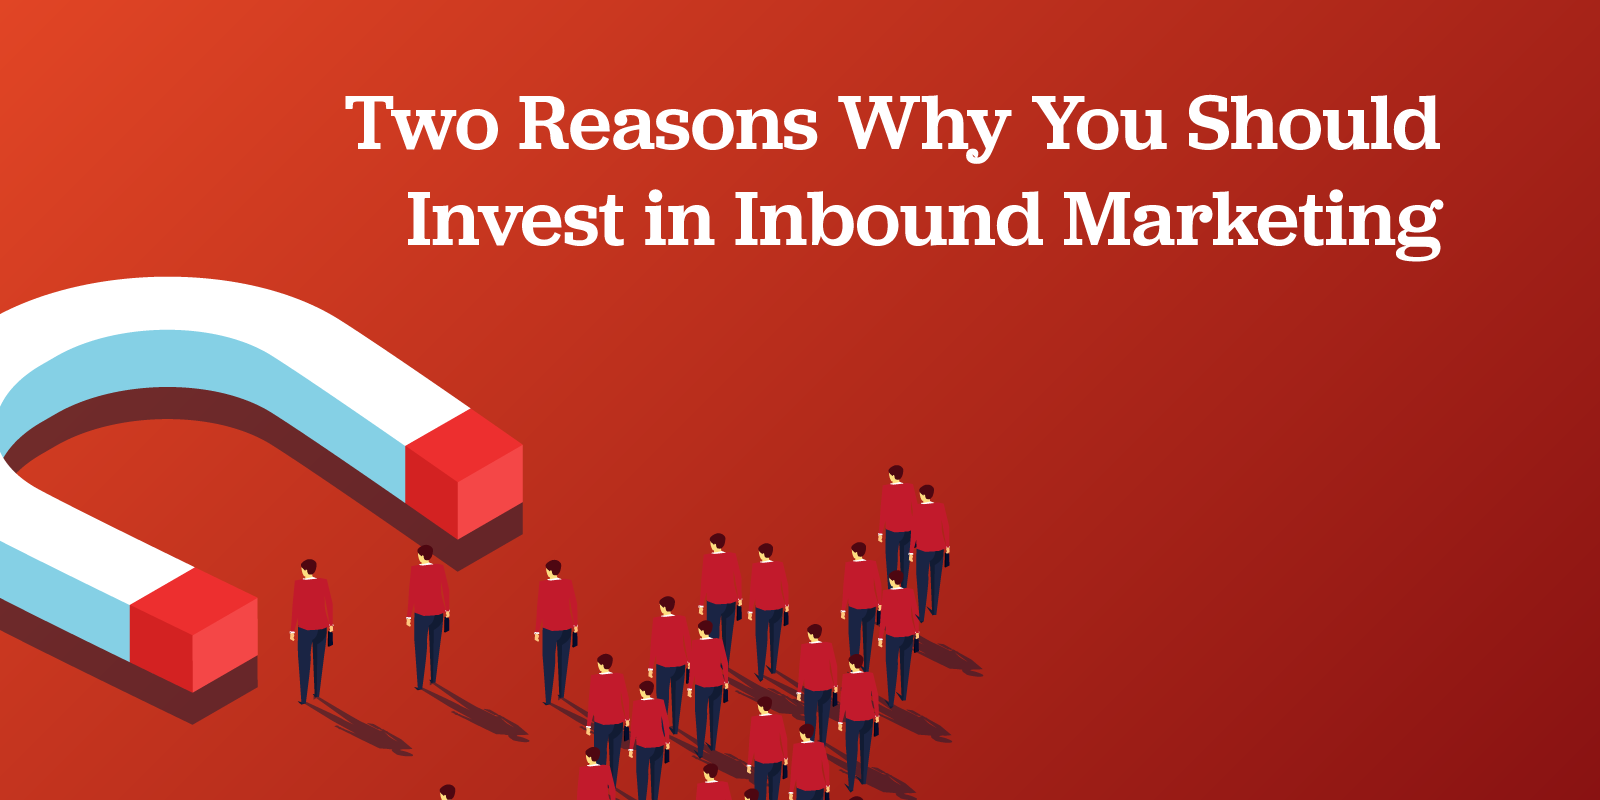 Two Reasons Why You Should Invest in Inbound Marketing featured image of a magnetic capturing sales leads